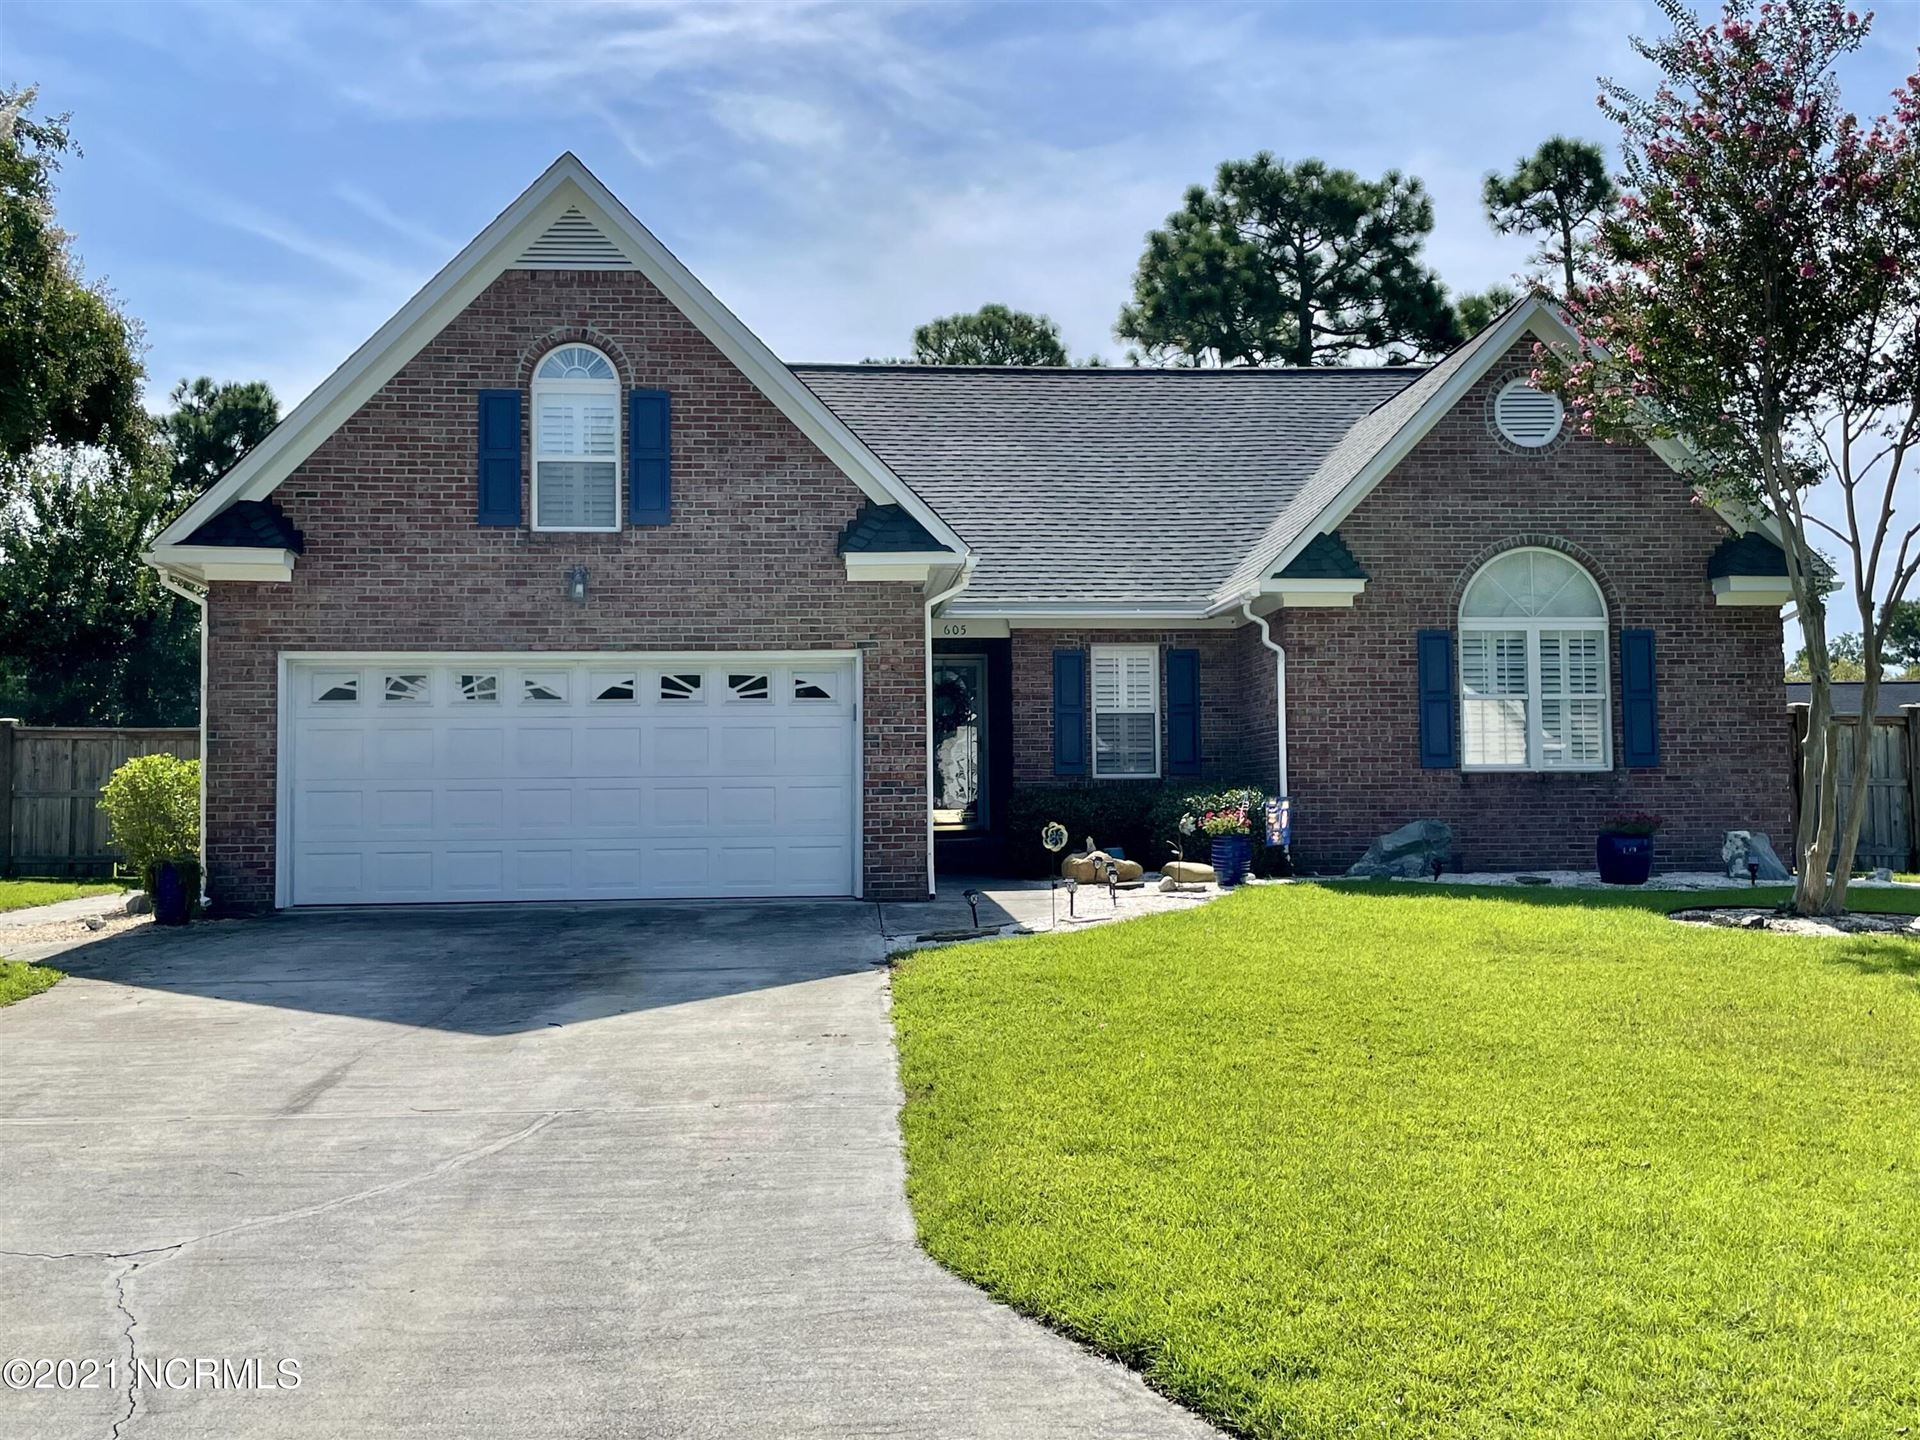 Photo of 605 Barksdale Road, Wilmington, NC 28409 (MLS # 100288100)